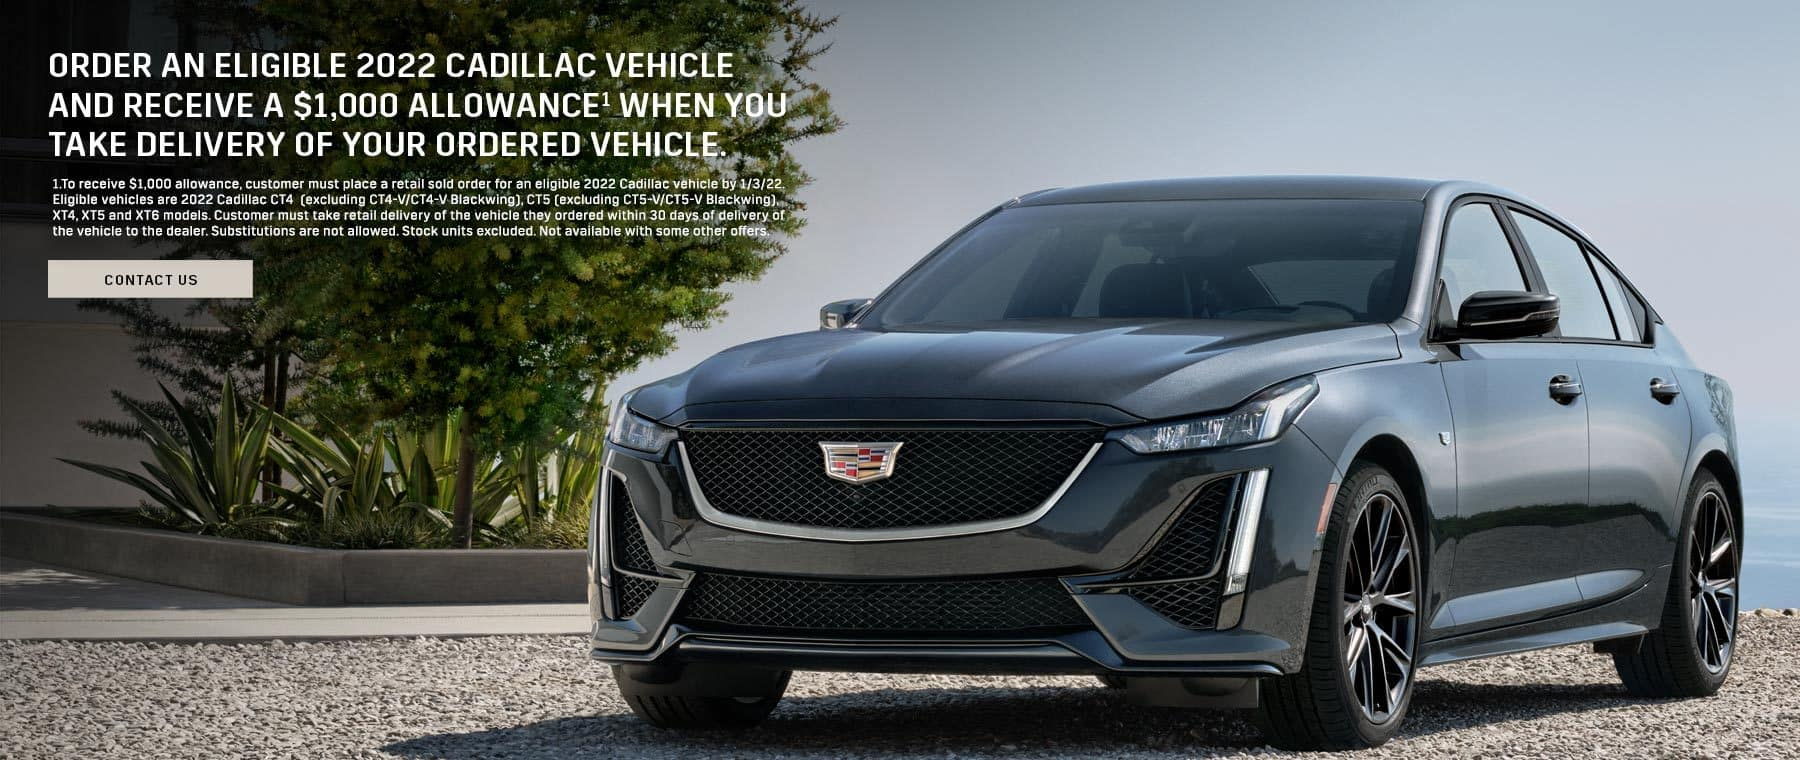 Order an eligible 2022 Cadillac vehicle and receive a $1,000 allowance when you take delivery of your ordered vehicle.